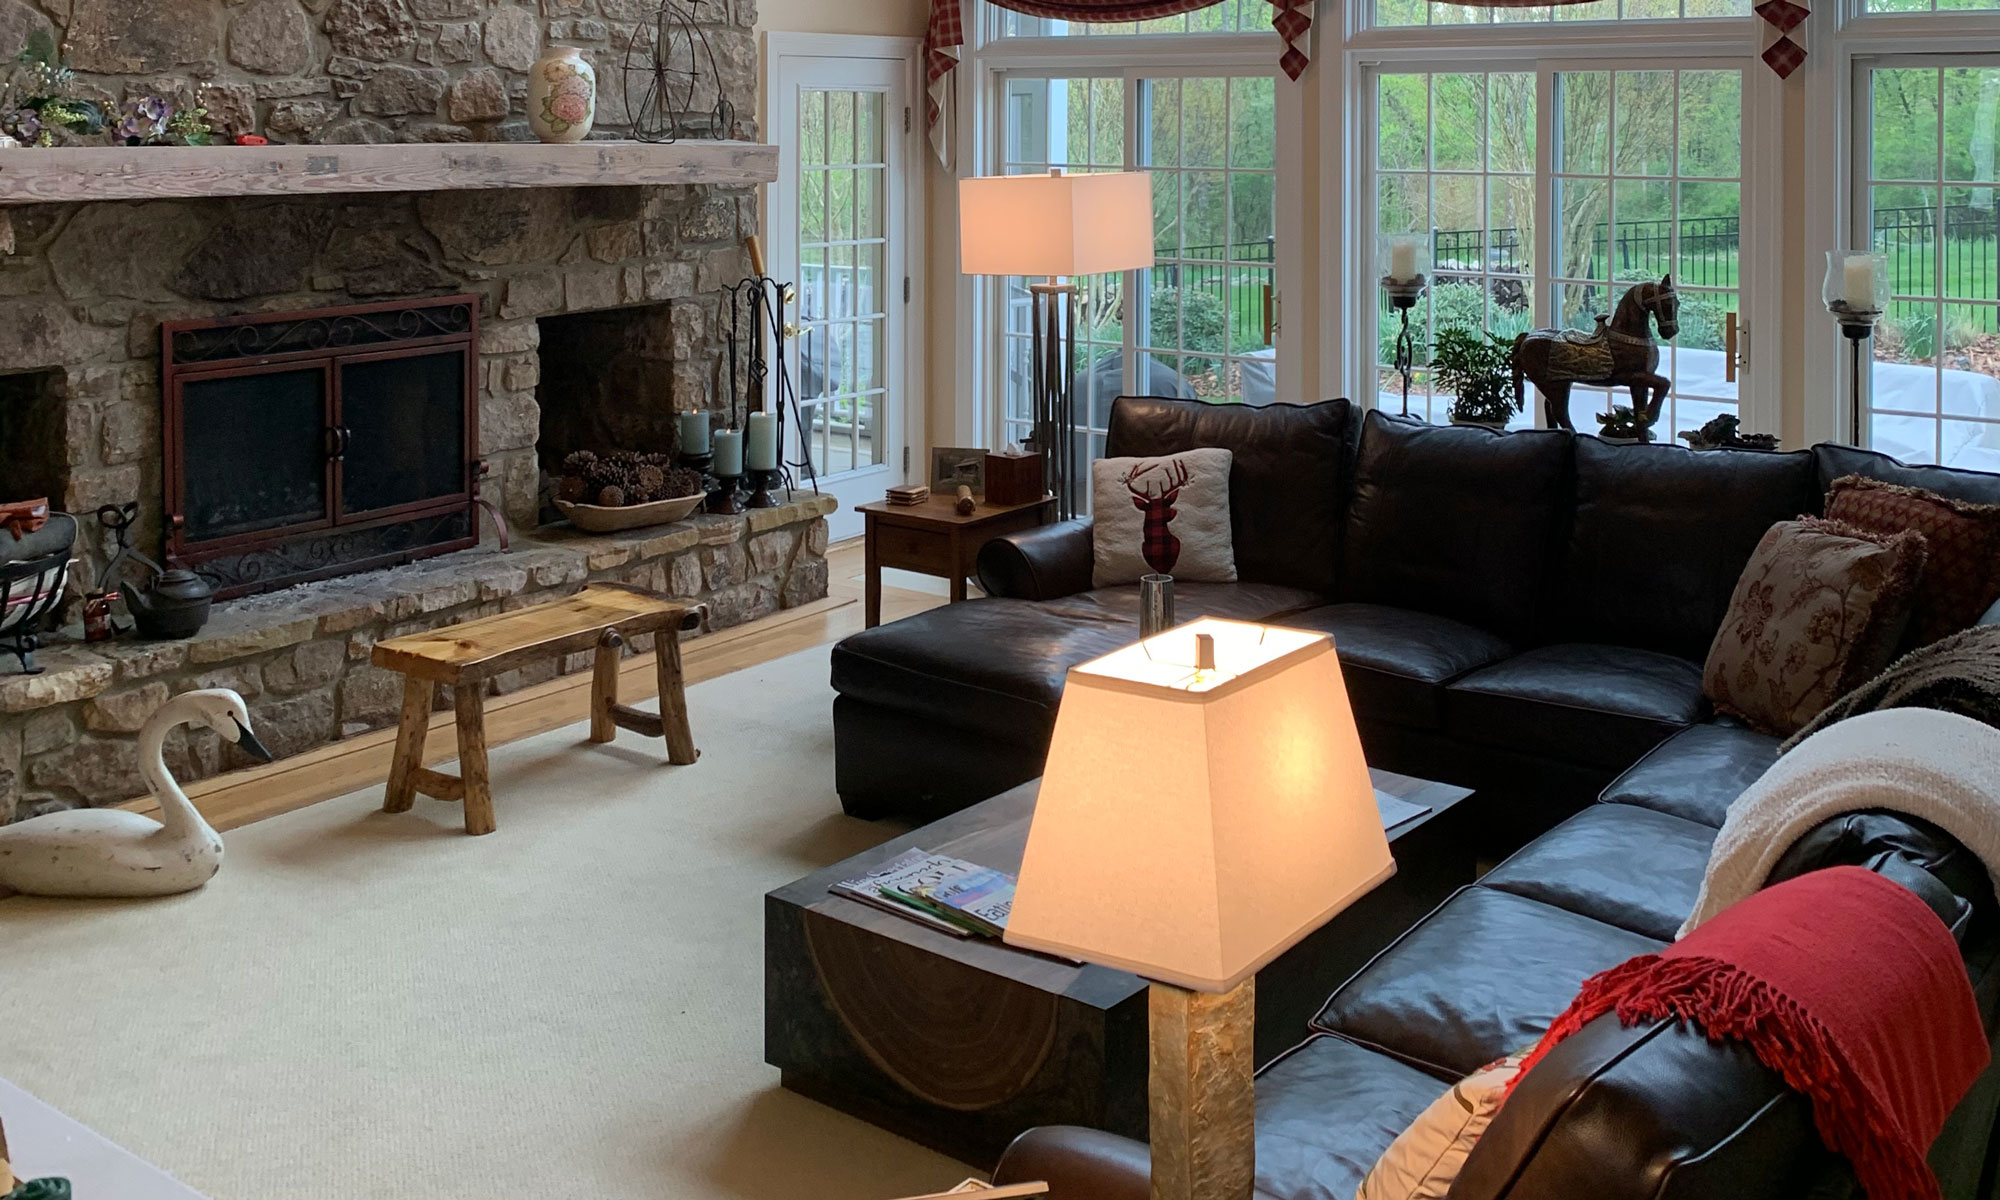 Couches across from fireplace in living room with large windows